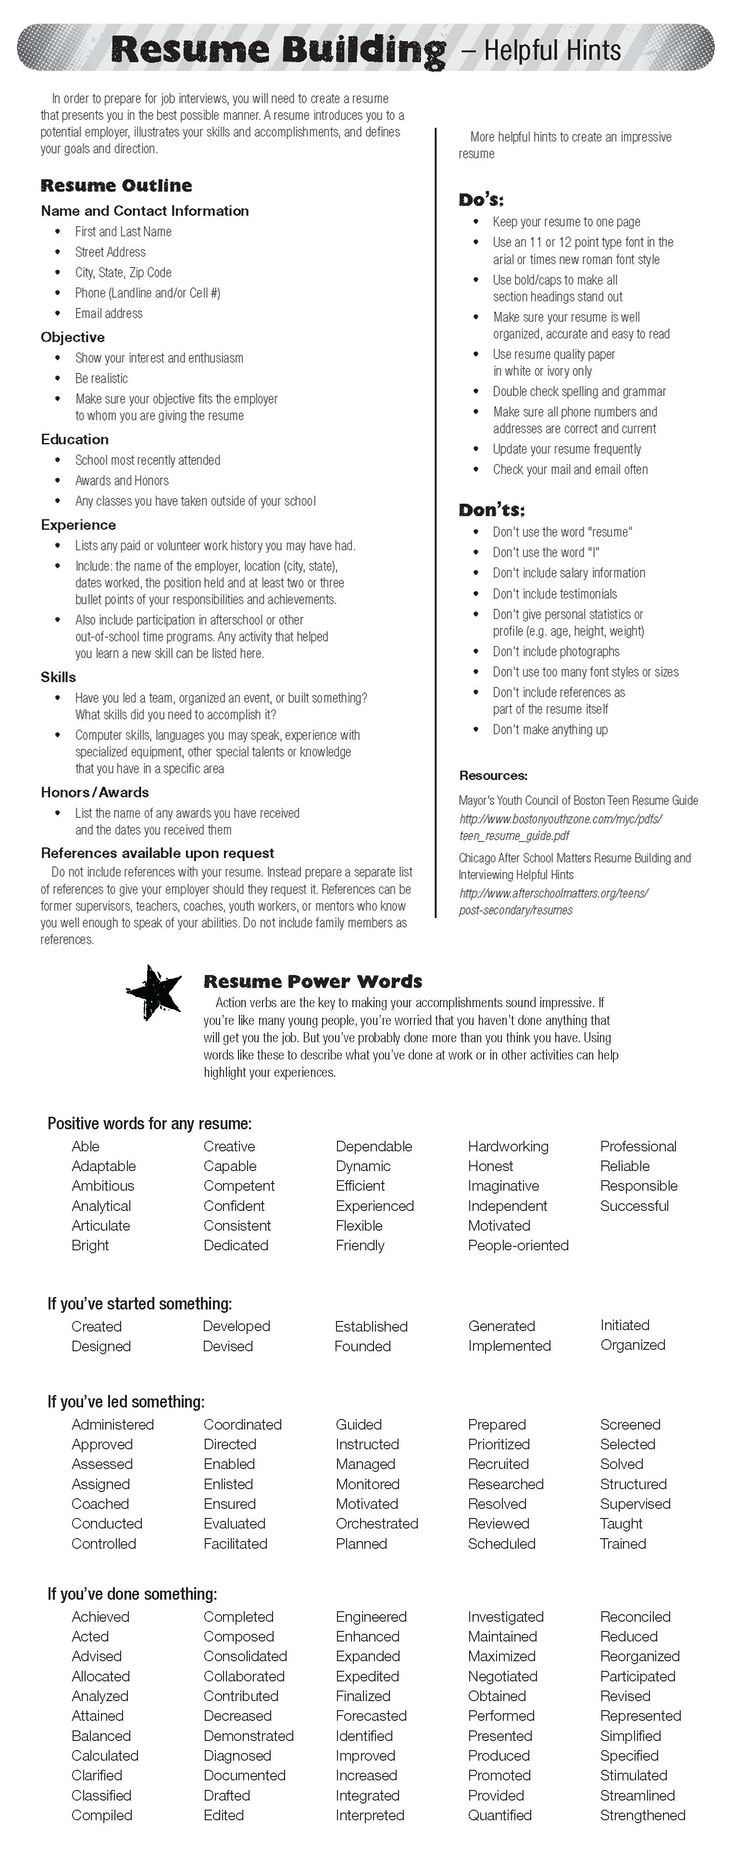 Opposenewapstandardsus  Stunning  Ideas About Resume On Pinterest  Cv Format Resume Cv And  With Luxury  Ideas About Resume On Pinterest  Cv Format Resume Cv And Resume Templates With Appealing Law School Graduate Resume Also Resume Computer Skills Example In Addition Resume Vita And Can You Use I In A Resume As Well As High School Activities Resume Additionally Technical Support Specialist Resume From Pinterestcom With Opposenewapstandardsus  Luxury  Ideas About Resume On Pinterest  Cv Format Resume Cv And  With Appealing  Ideas About Resume On Pinterest  Cv Format Resume Cv And Resume Templates And Stunning Law School Graduate Resume Also Resume Computer Skills Example In Addition Resume Vita From Pinterestcom